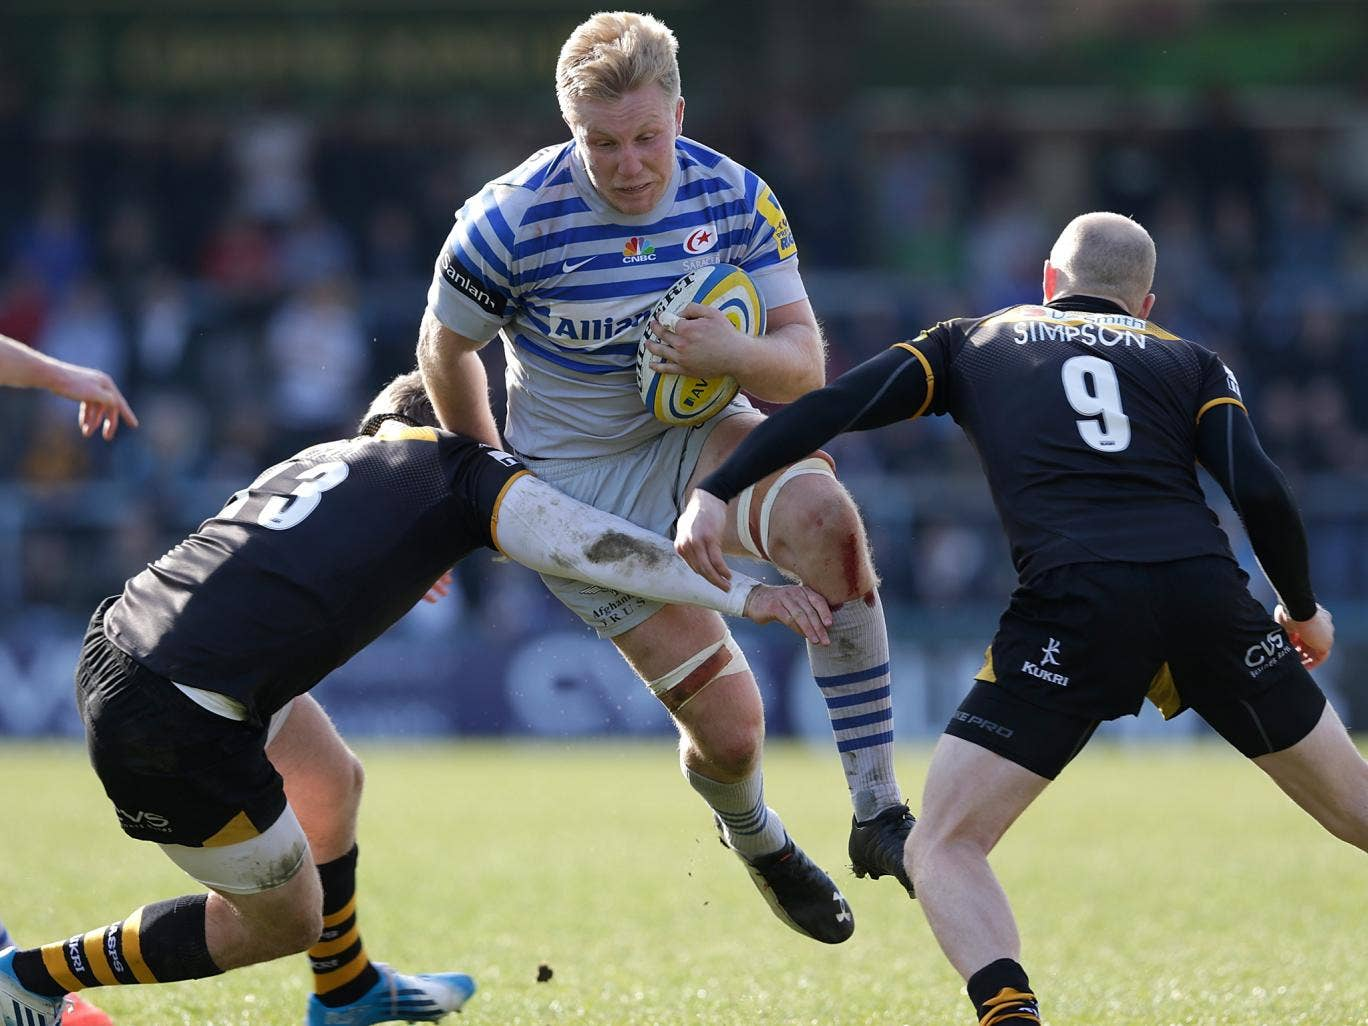 Jackson Wray scored one of Saracens' four tries against Wasps